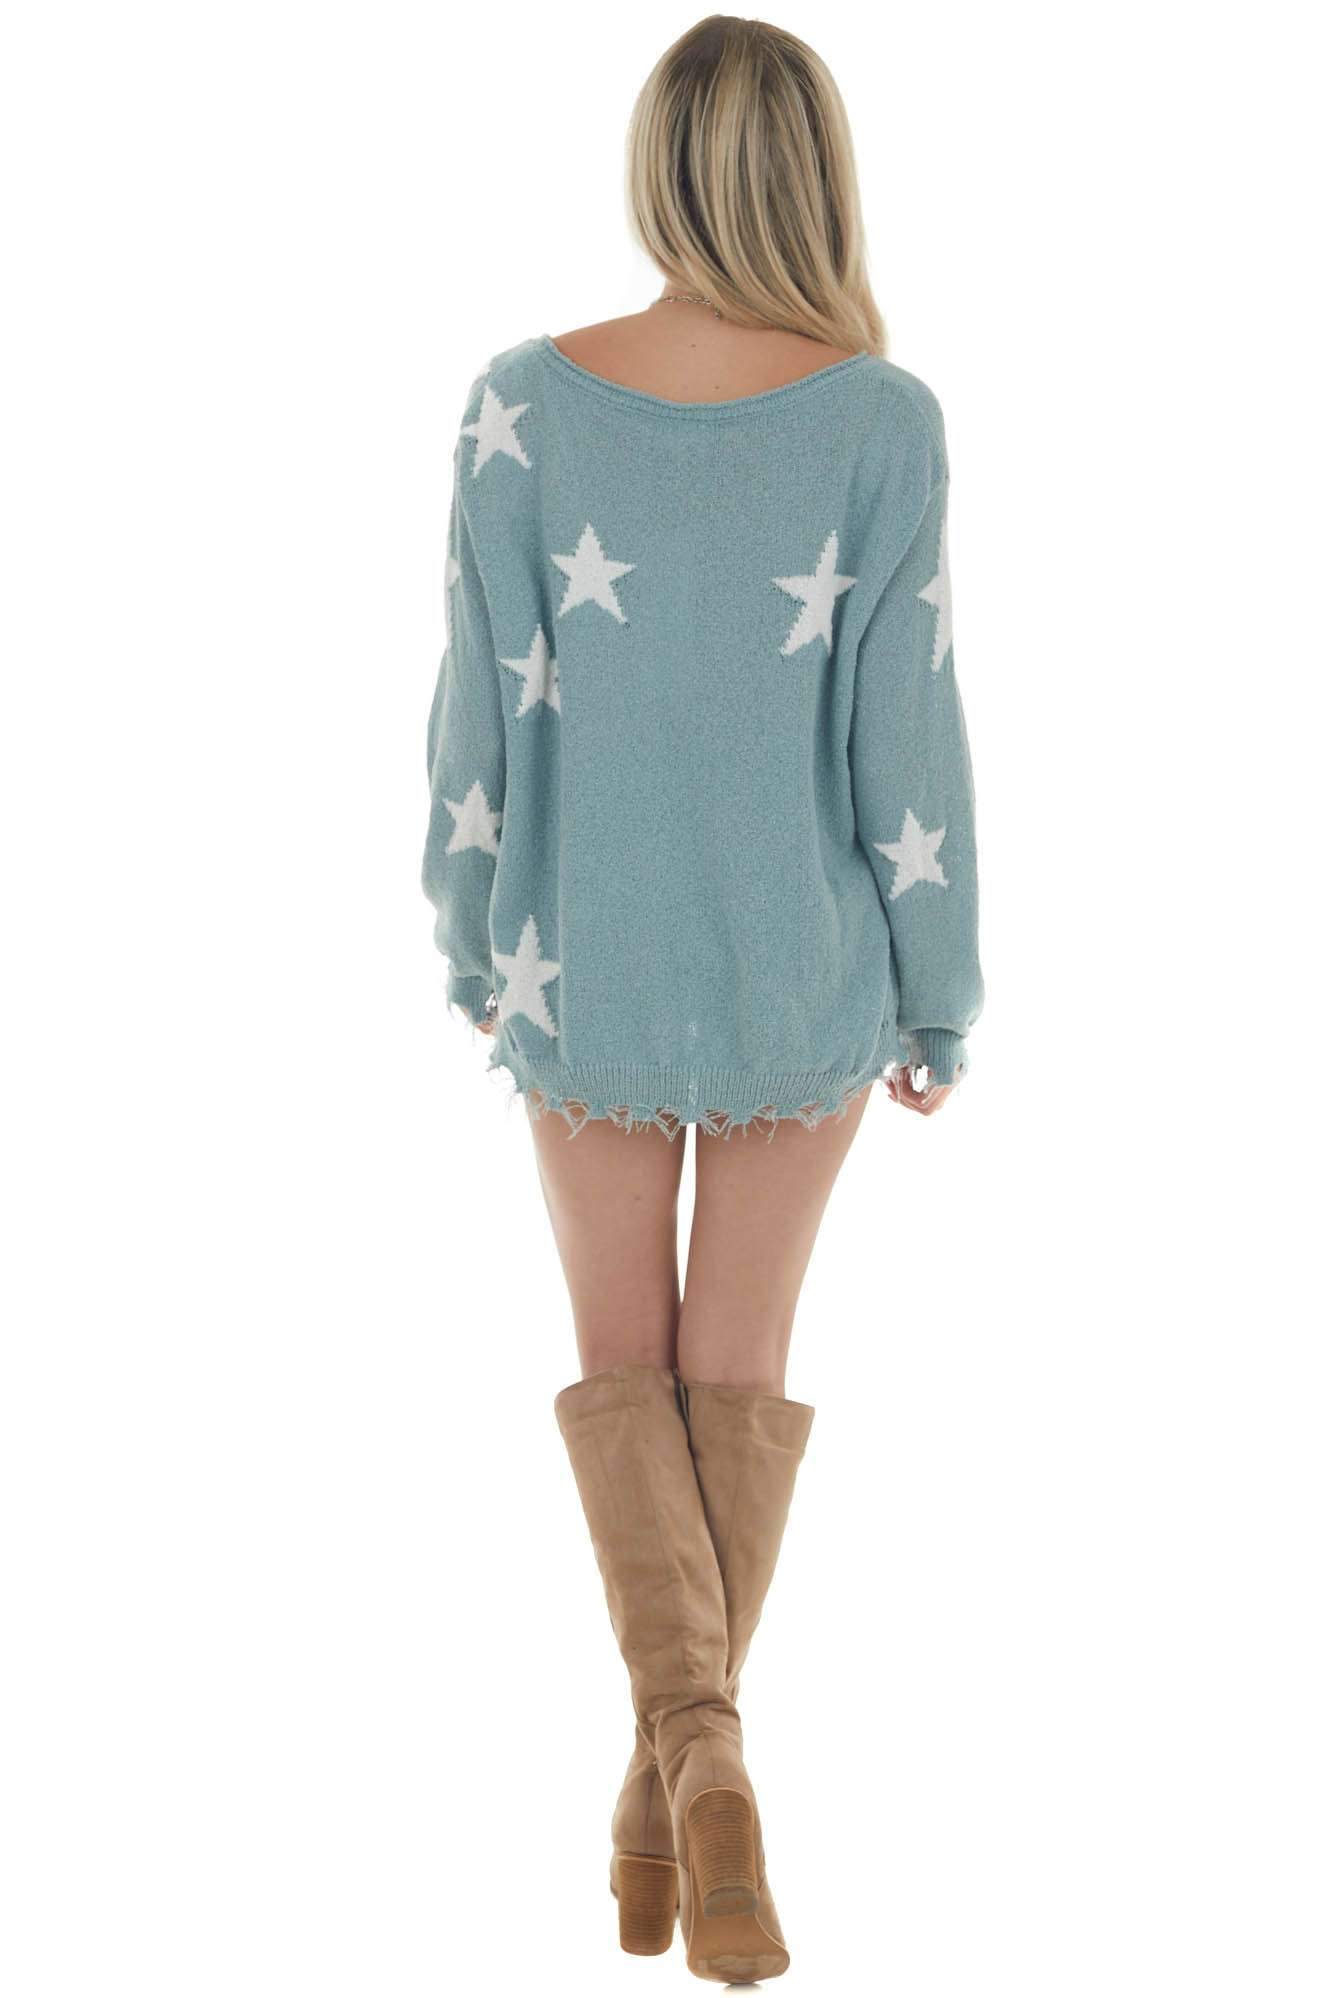 Faded Juniper Star Sweater with Frayed Edges